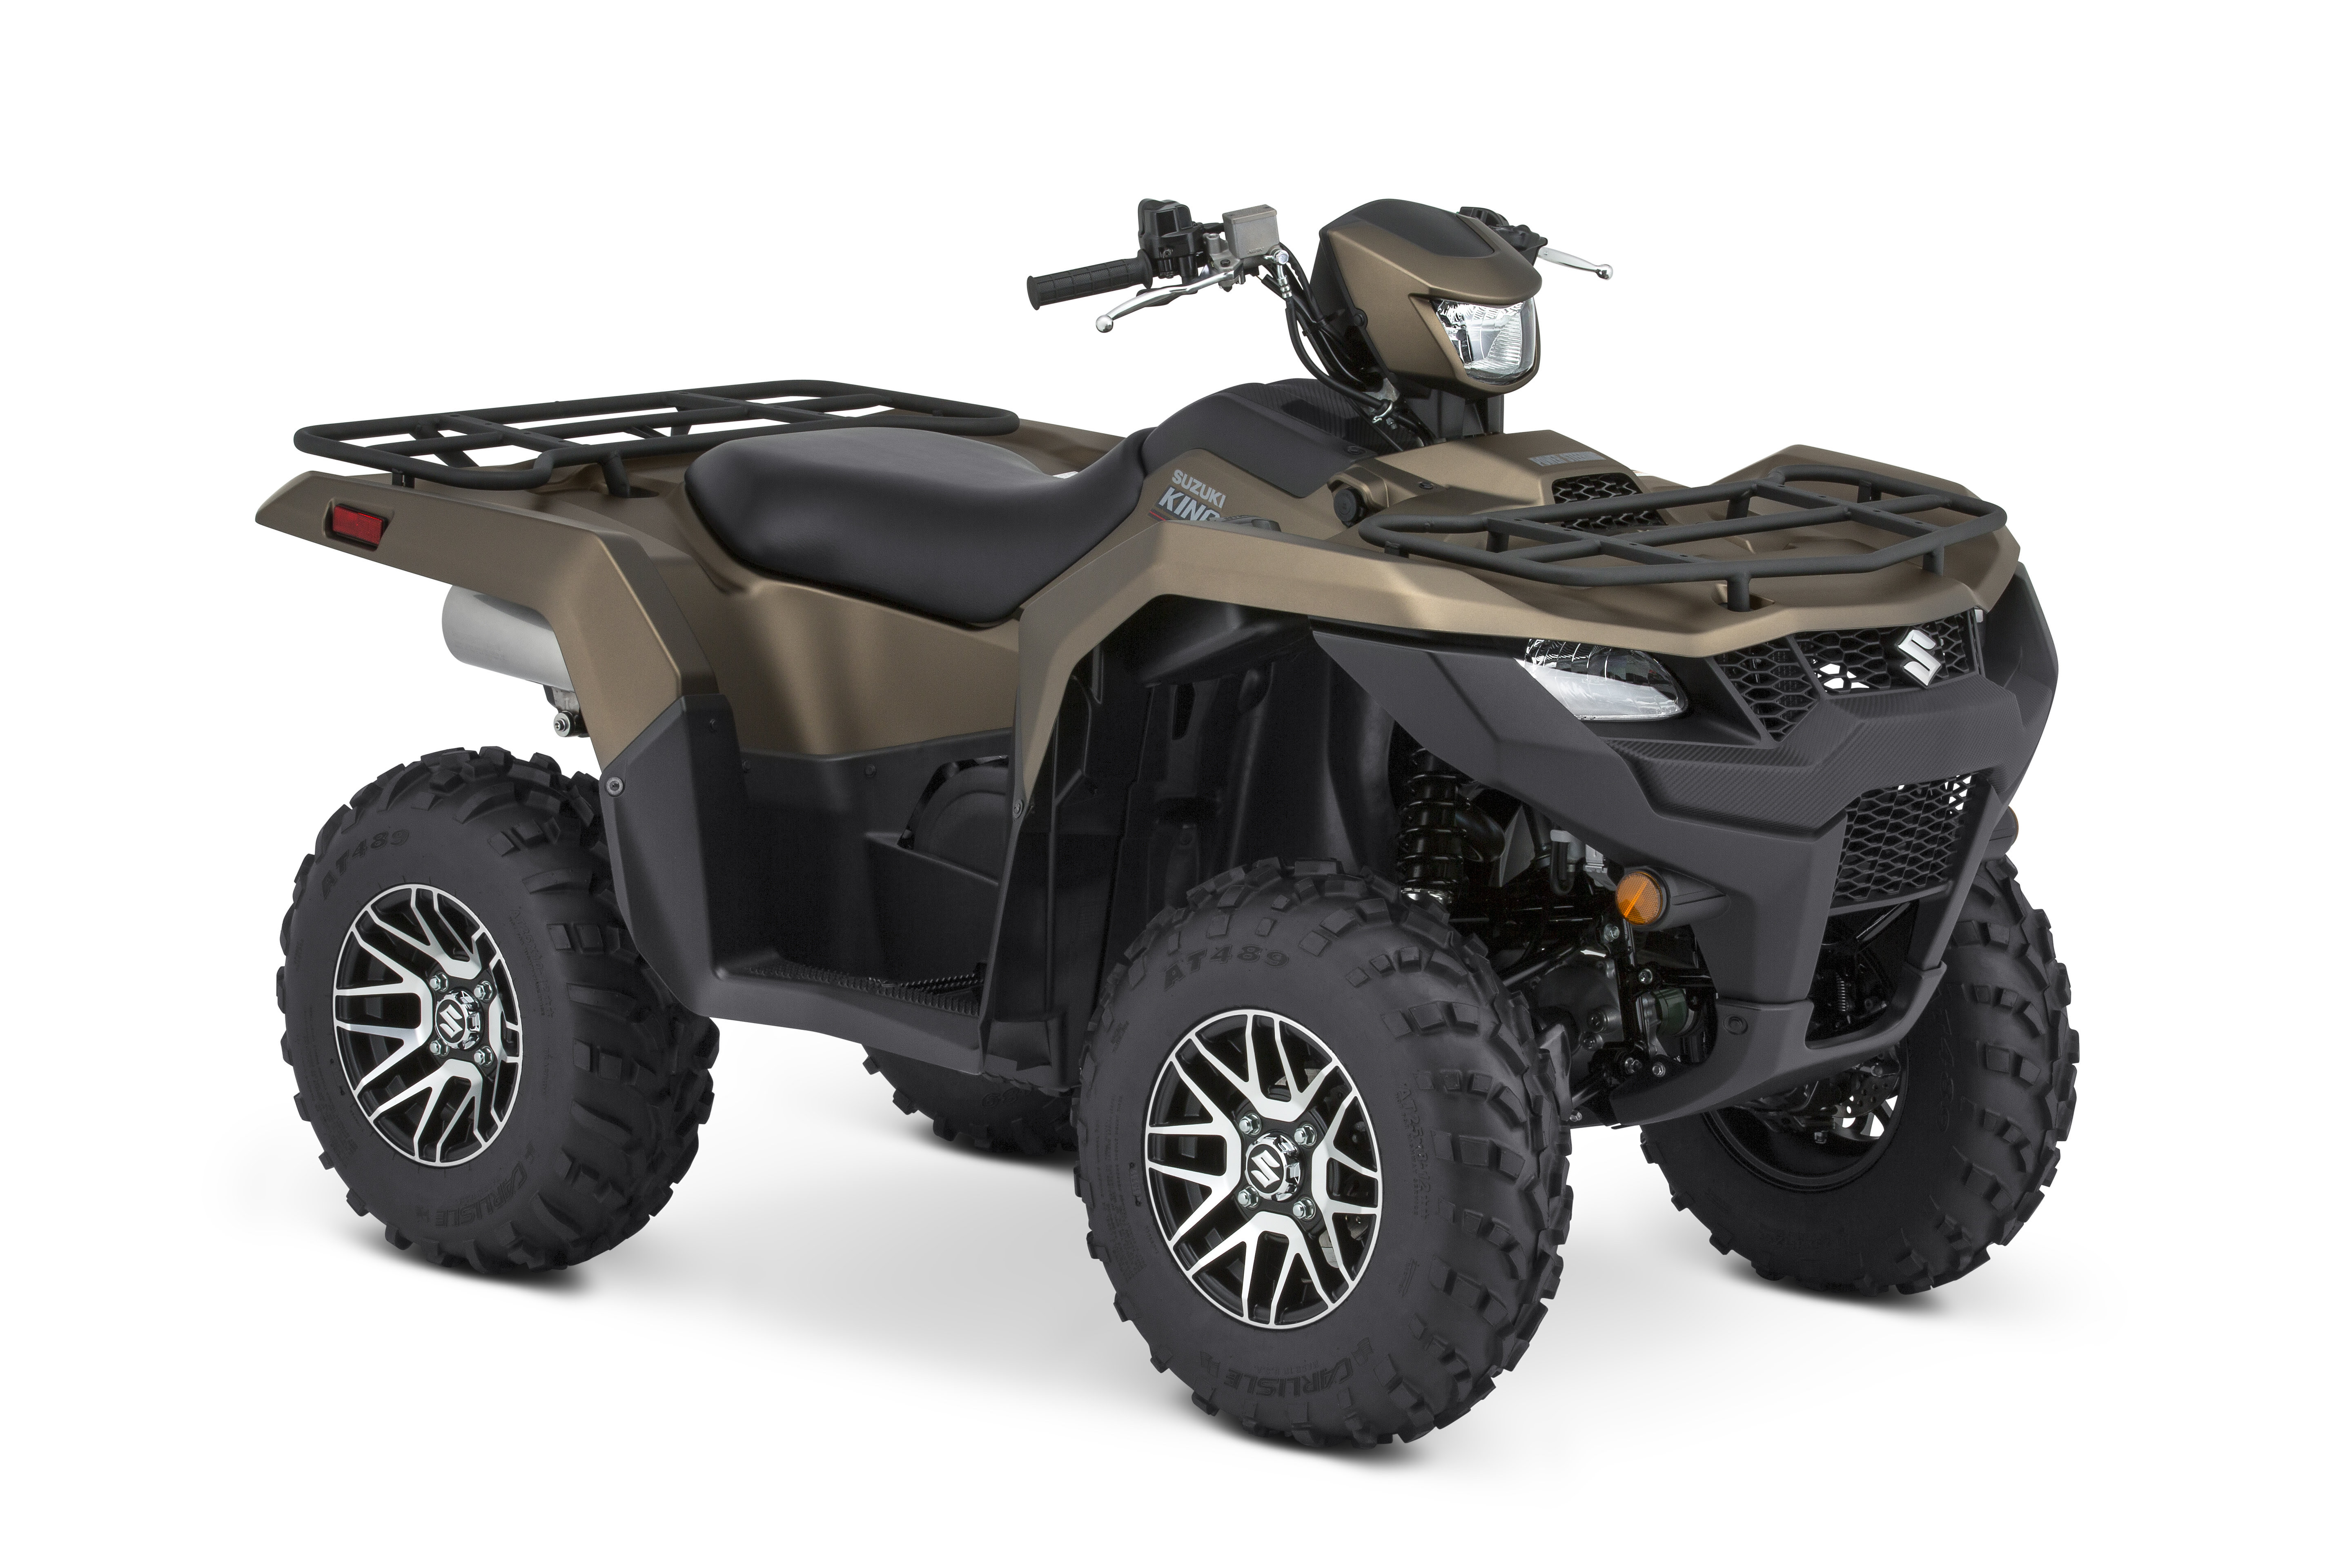 2019 Suzuki KingQuad 750-500 ATV Information-Specs-Price-For sale. | ATV  Illustrated